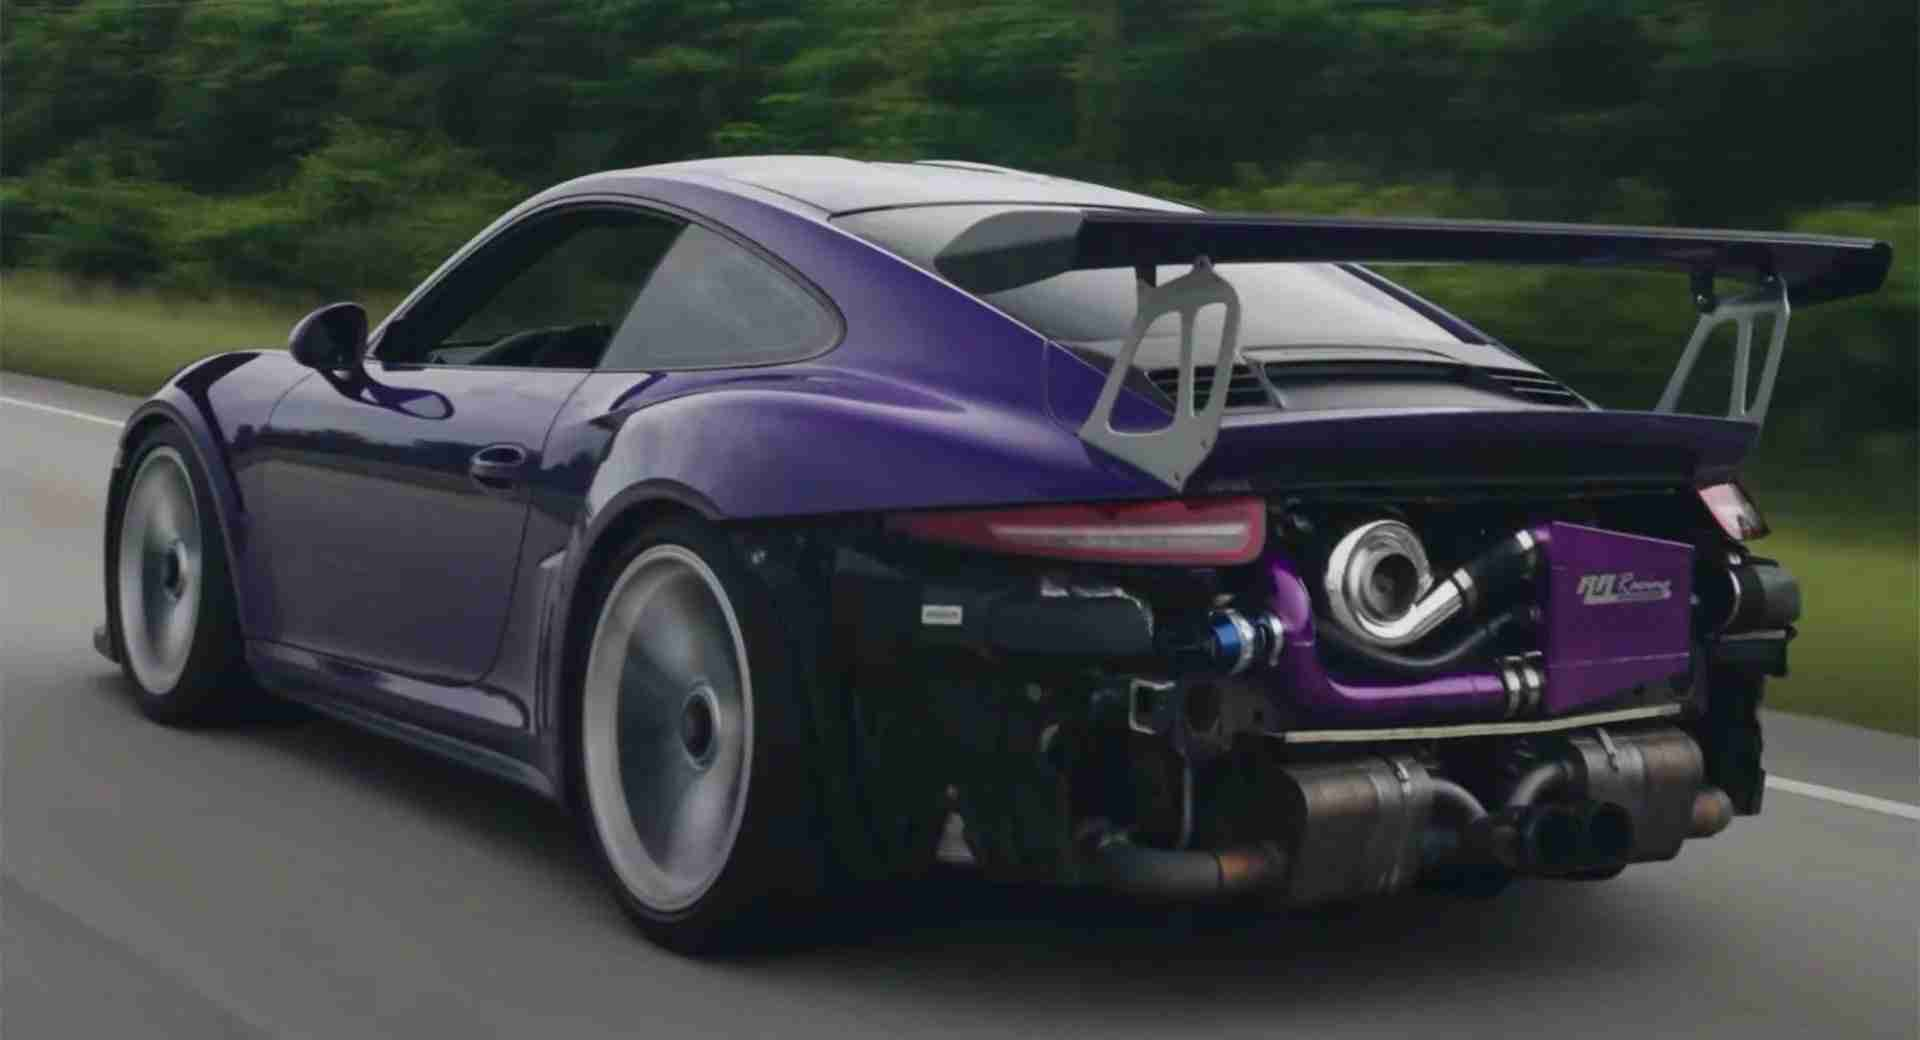 Porsche made every conceivable effort to ensure that the naturally aspirated flat-six it designed for the 911 GT3 RS was unparalleled in its class. Apparently, someone felt it could still do with a supercharger.